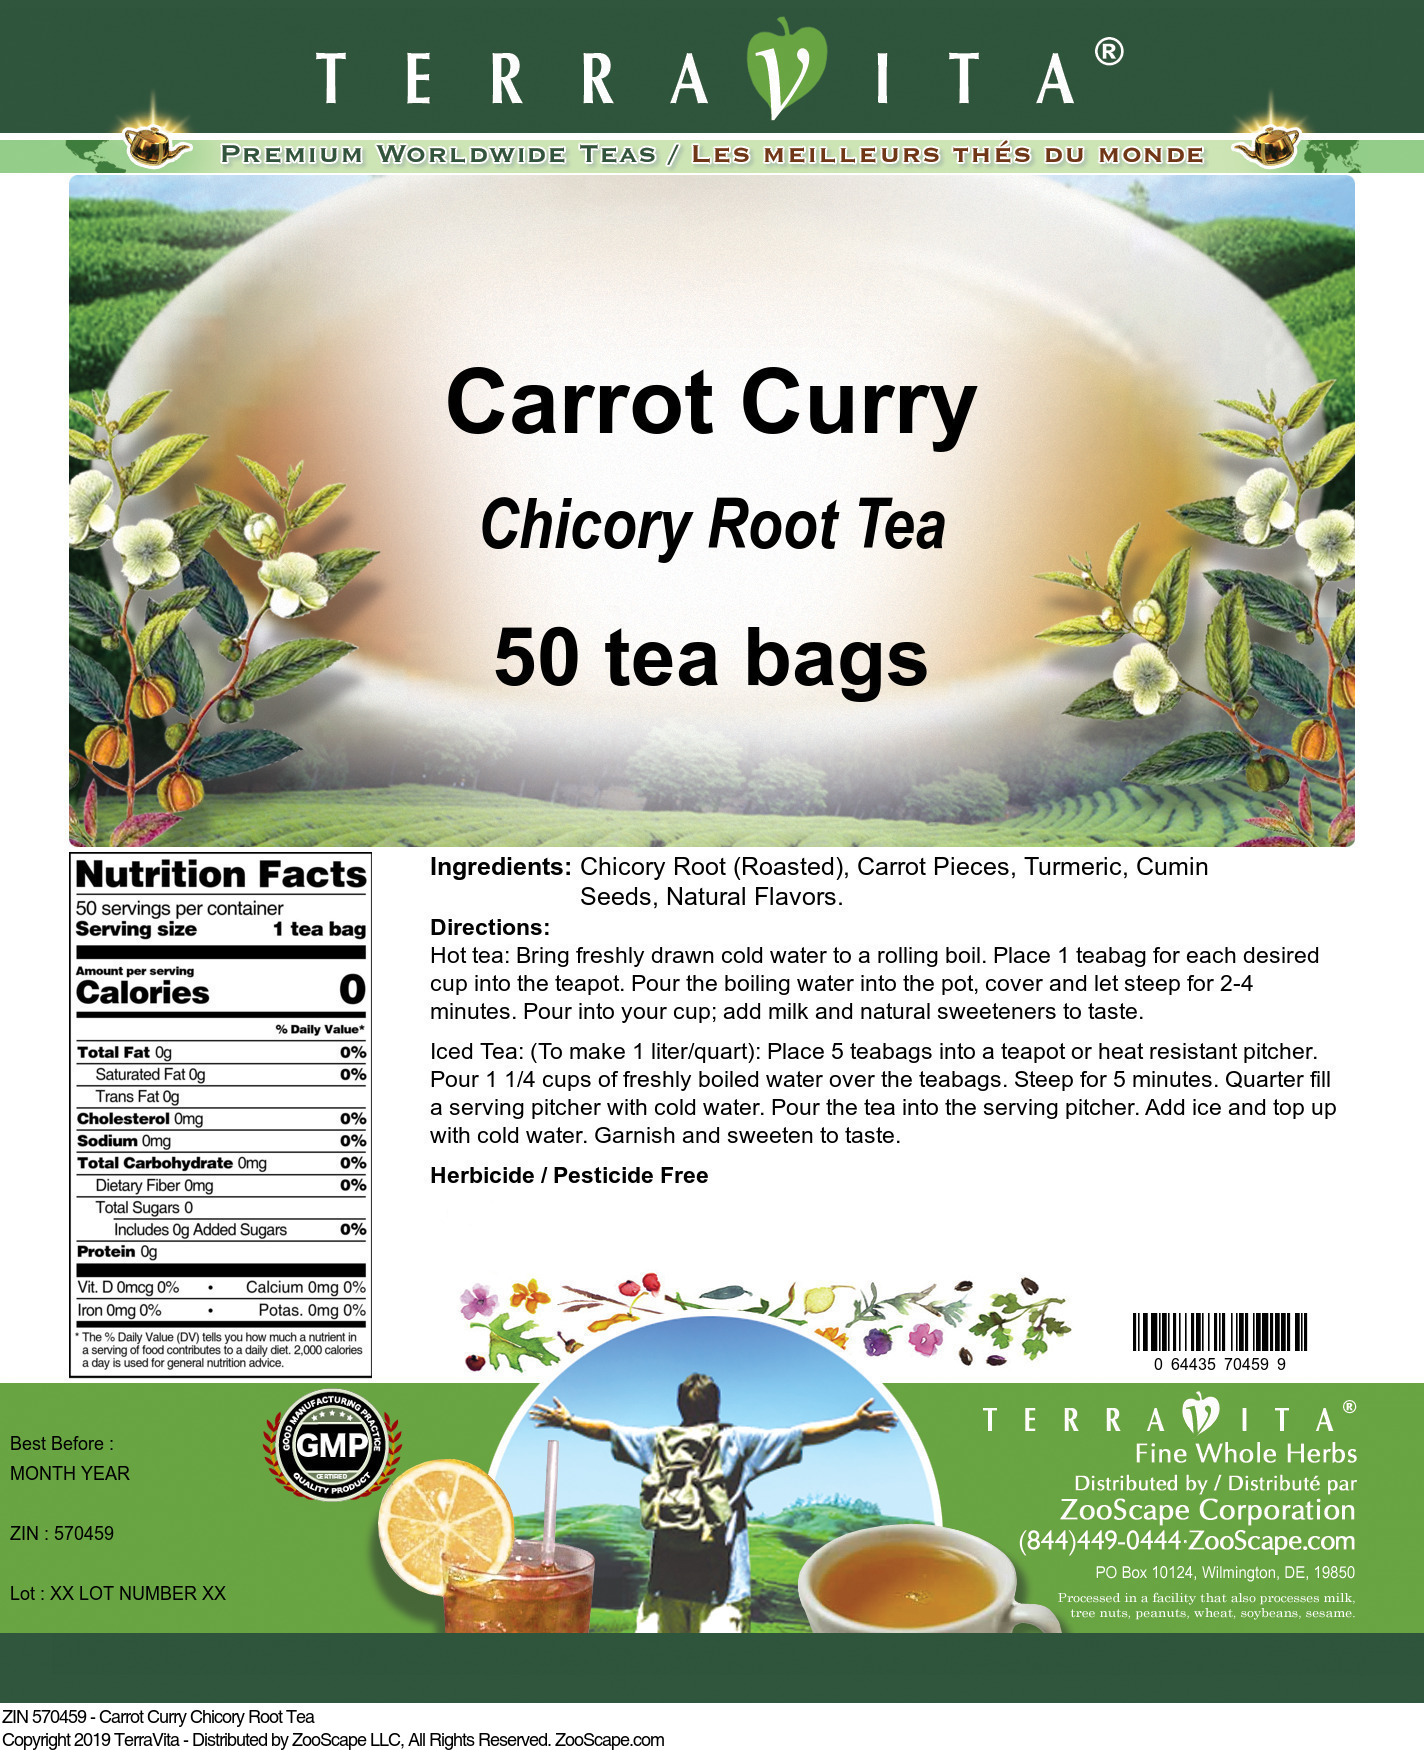 Carrot Curry Chicory Root Tea